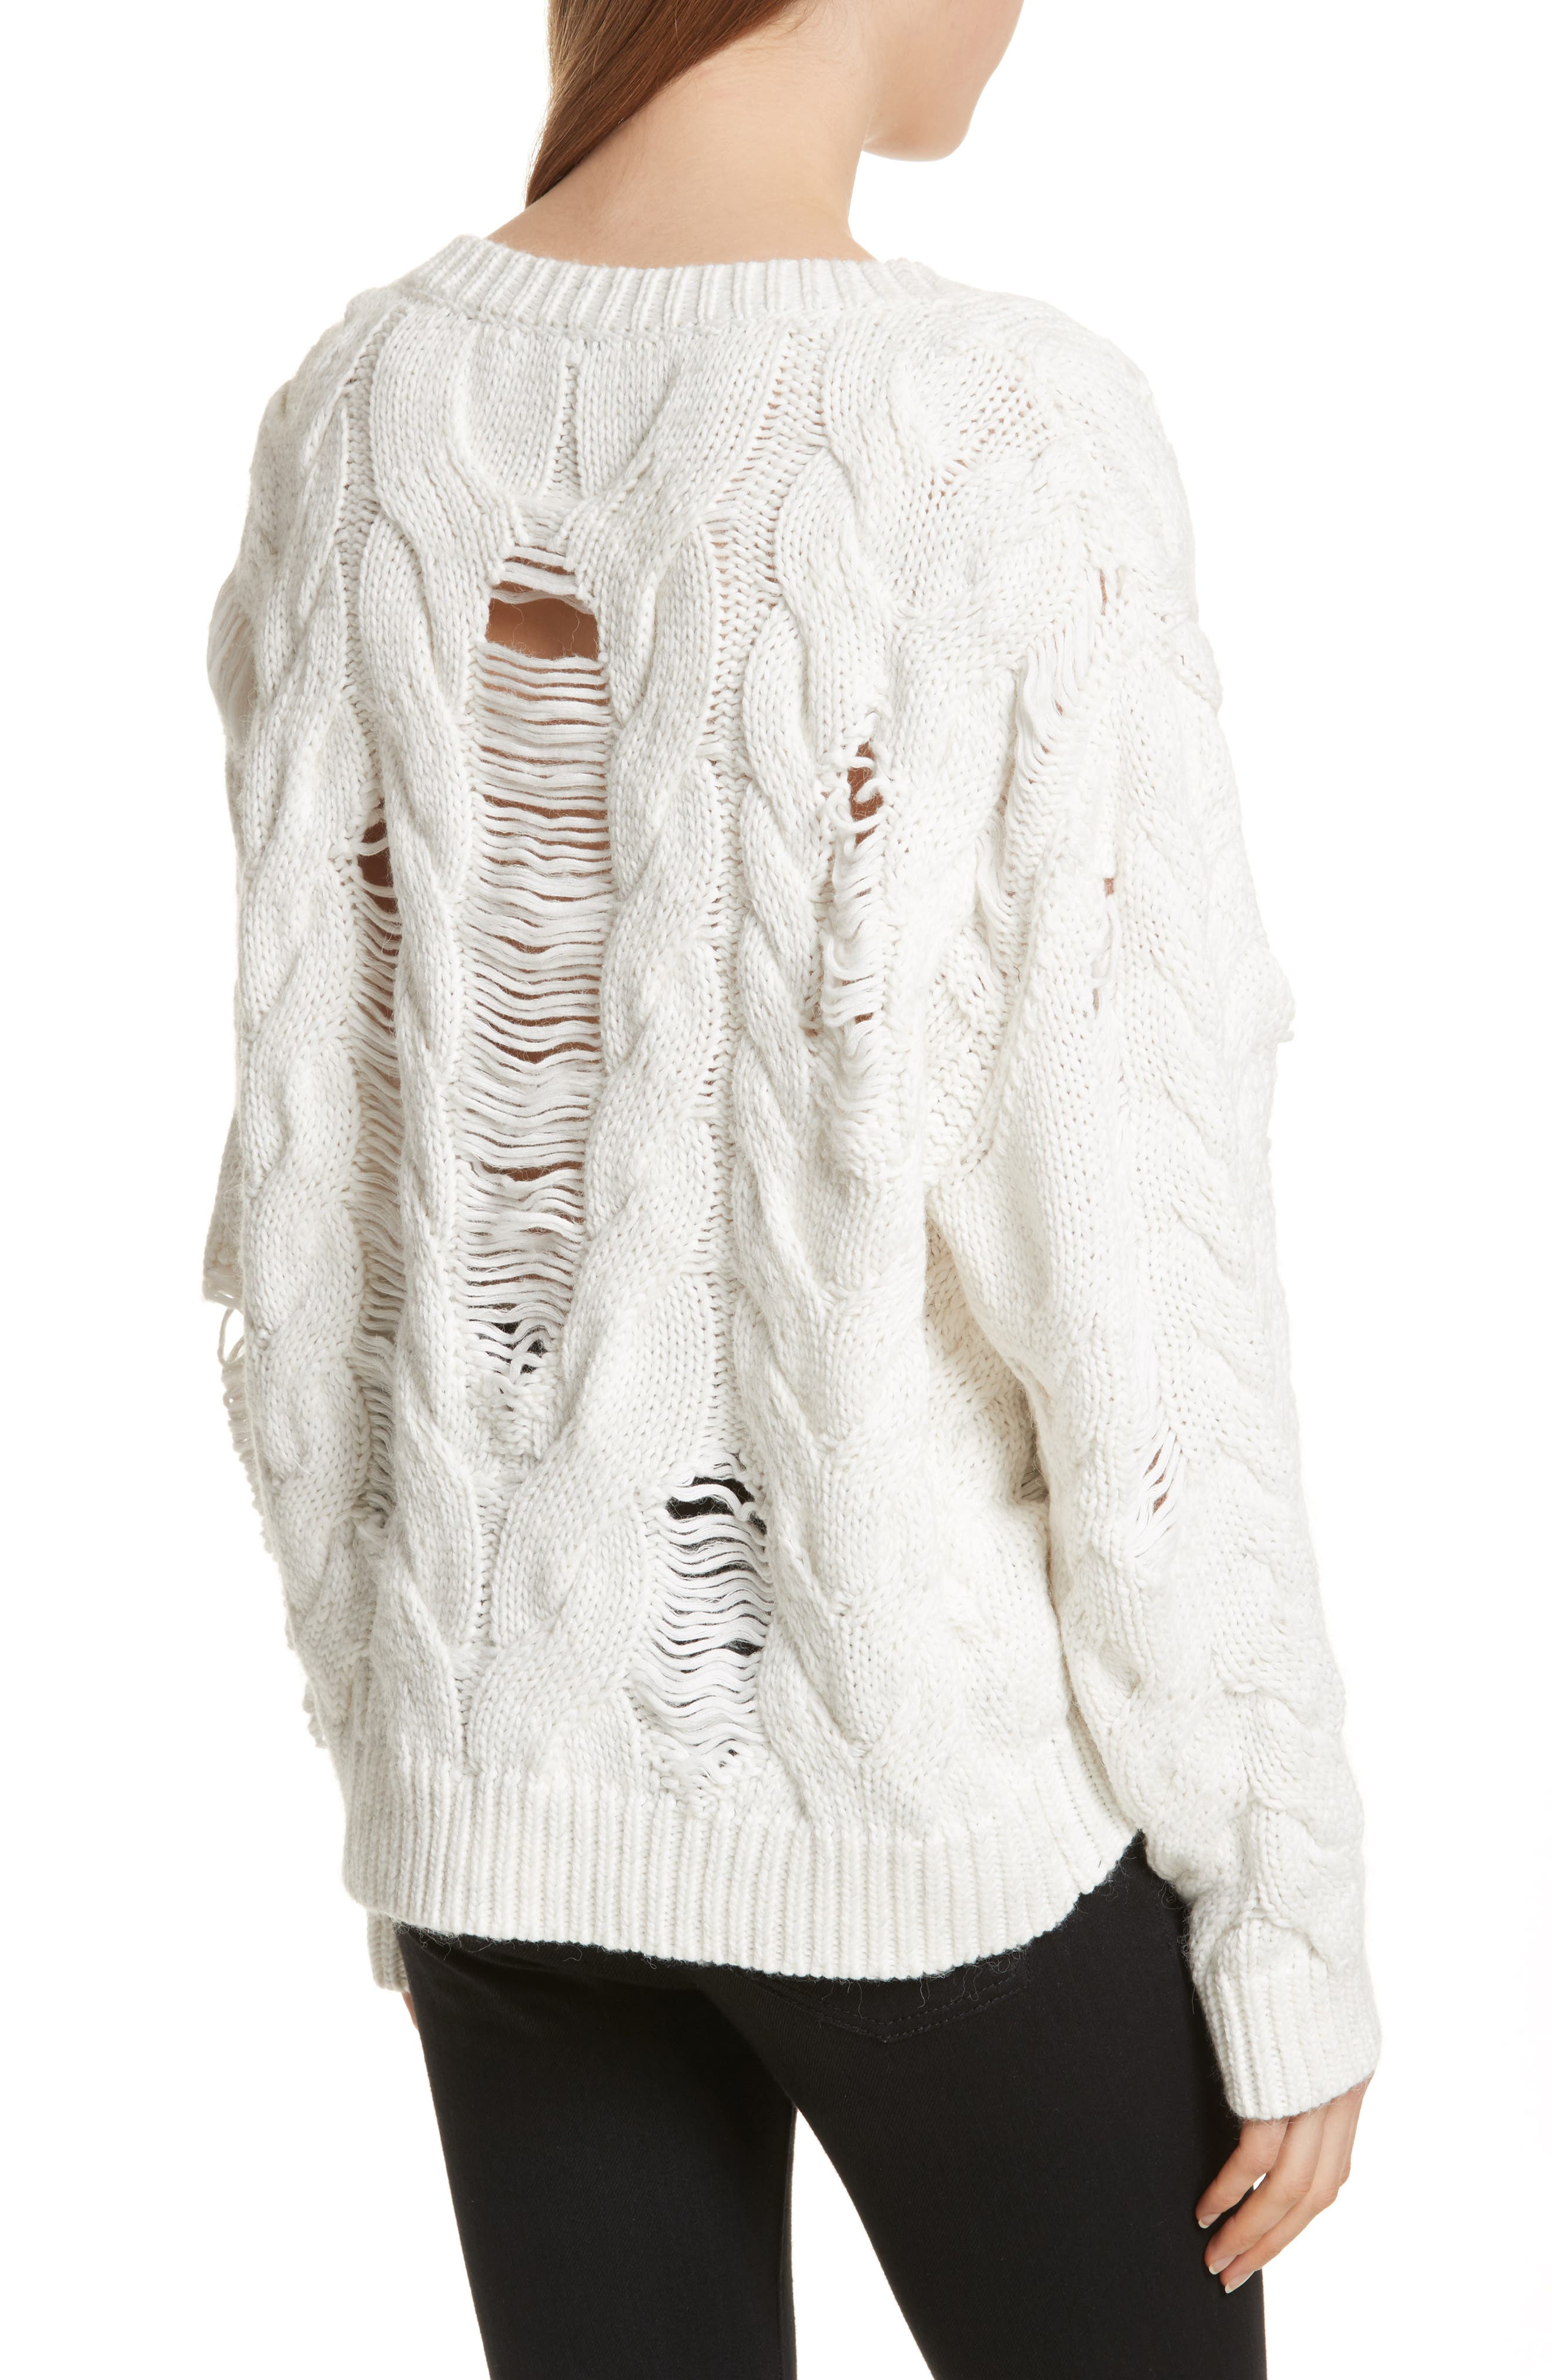 Fighla Distressed Sweater,                             Alternate thumbnail 2, color,                             010